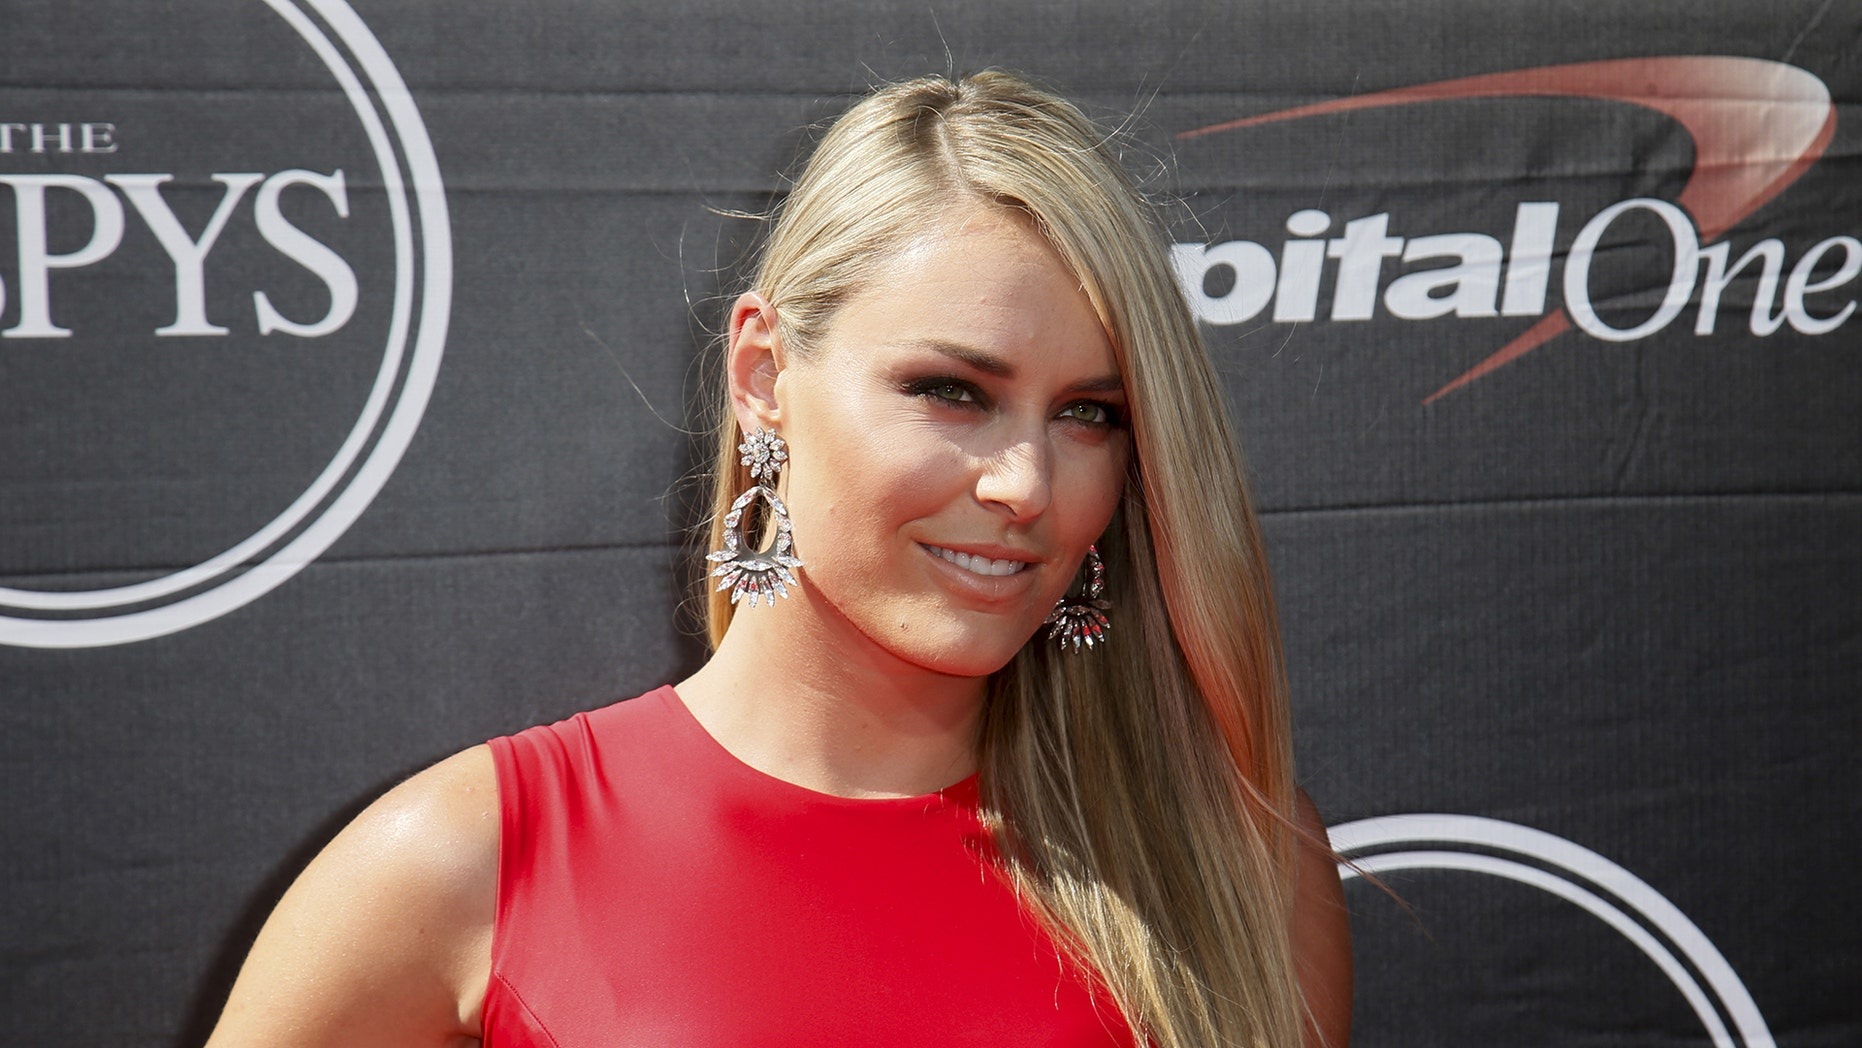 Lindsey Vonn: Lindsey Vonn On Post-surgery Scar: 'I Am Strong And